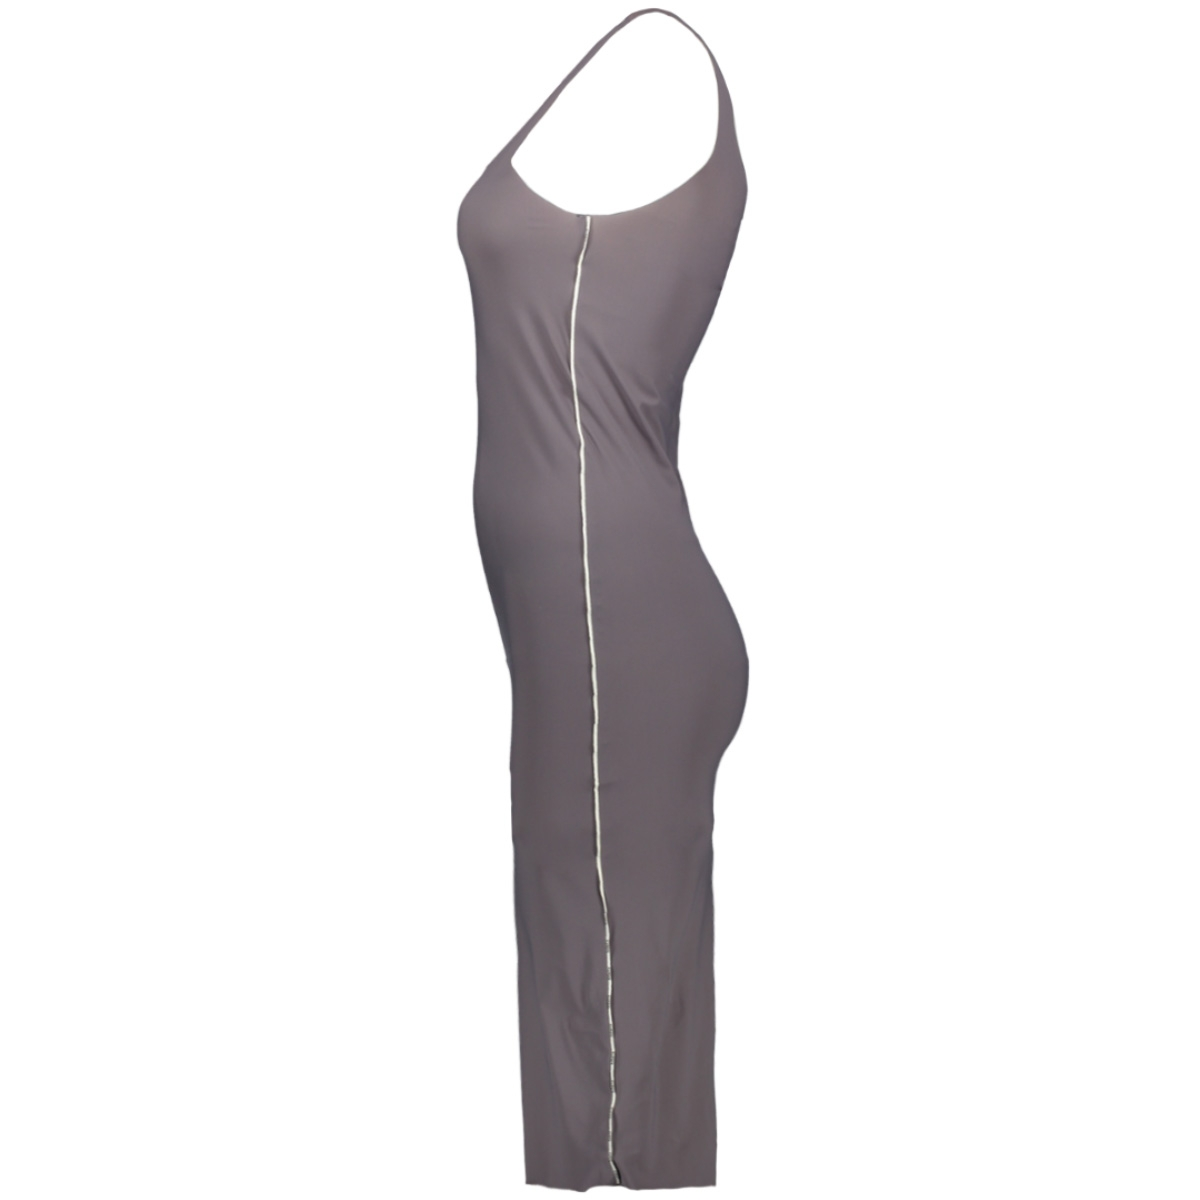 strappy dress 20 314 0201 10 days jurk 1072 pavement